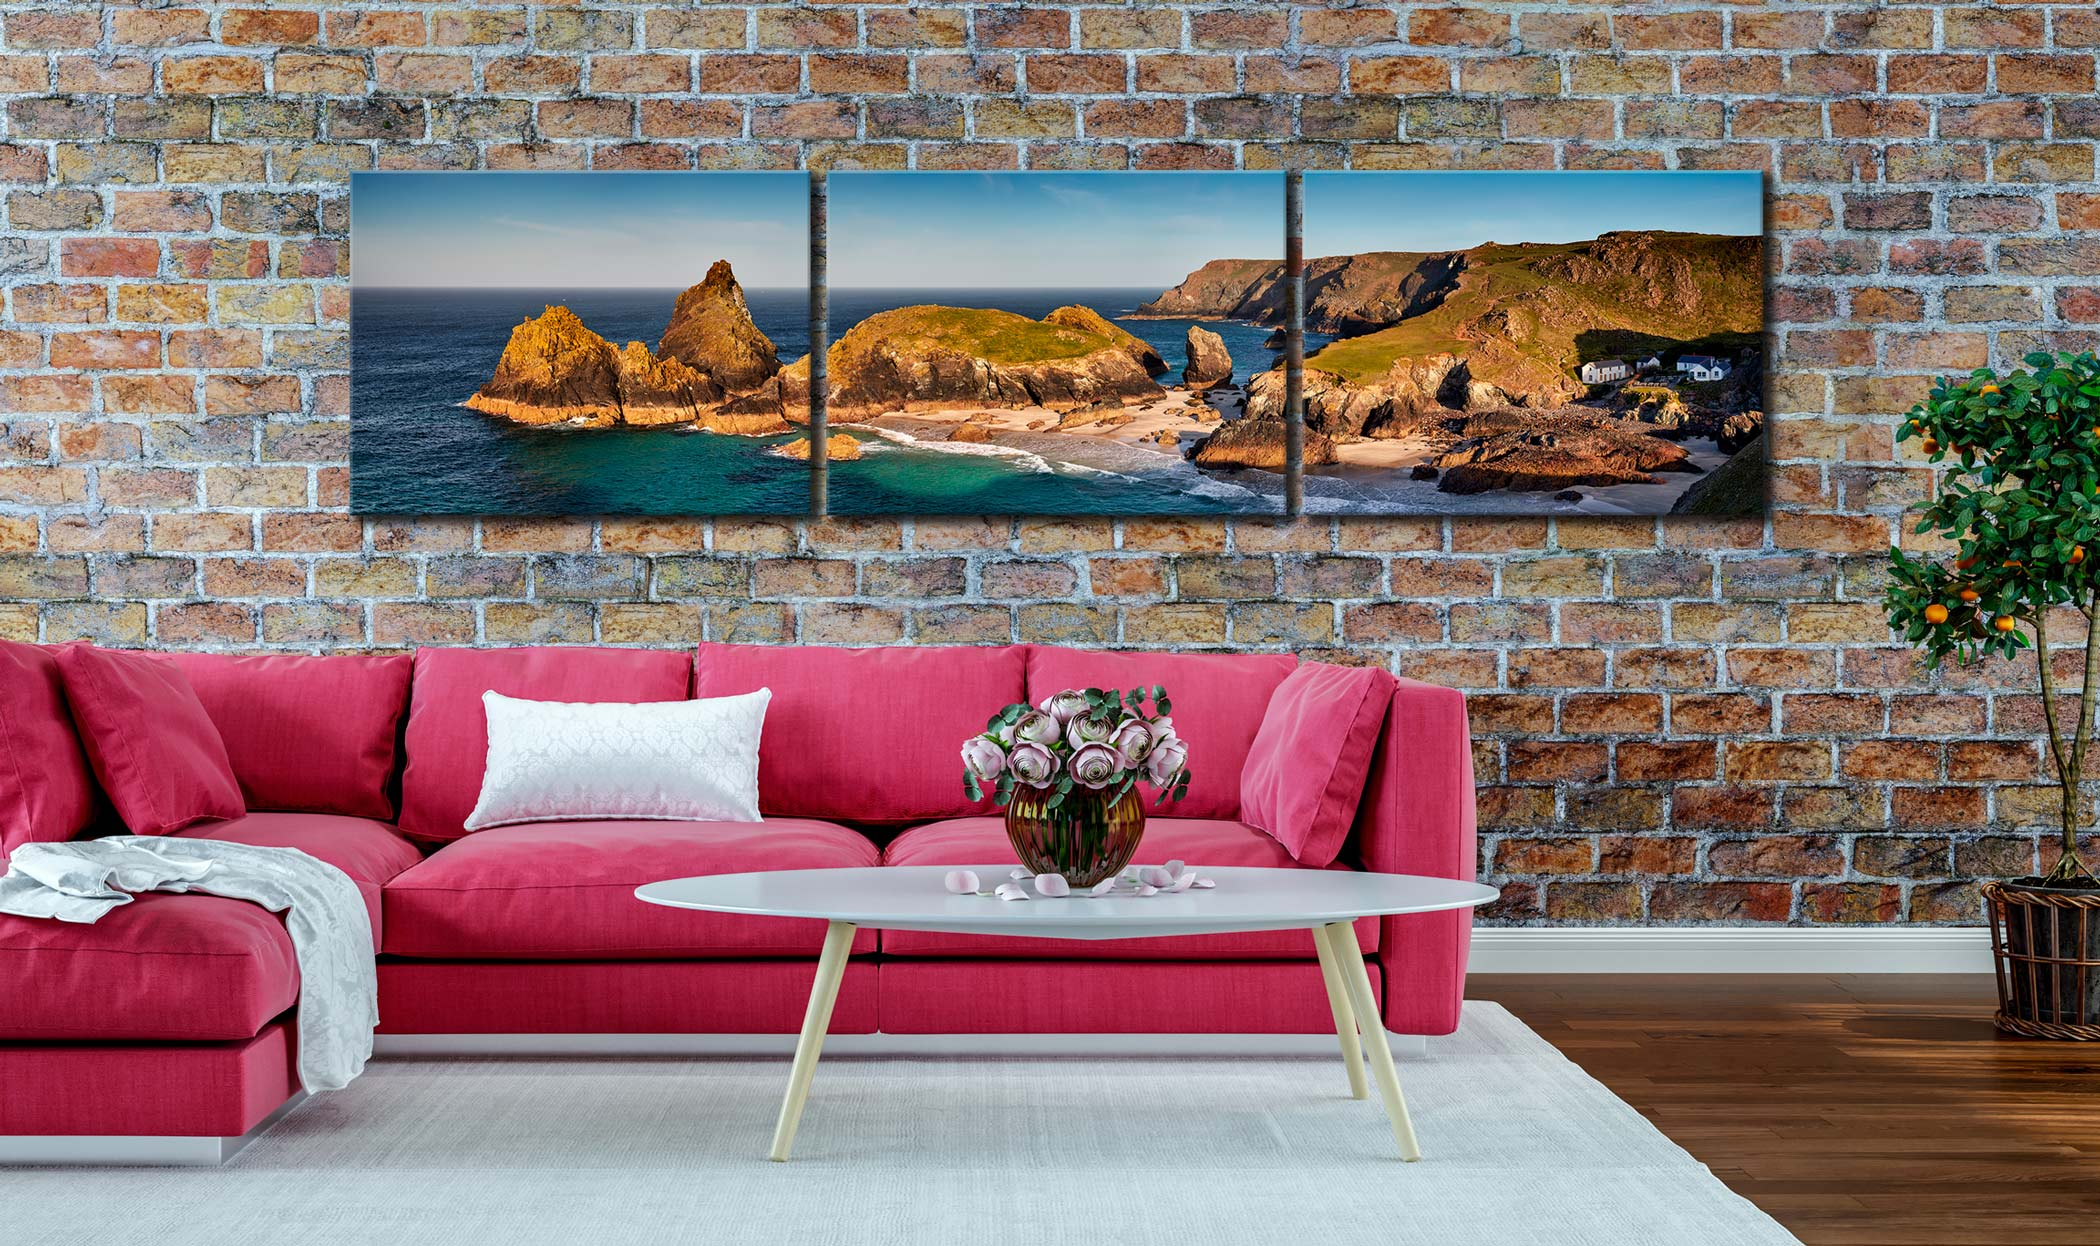 Kynance Cove Morning Sunlight - 3 Panel Canvas on Wall